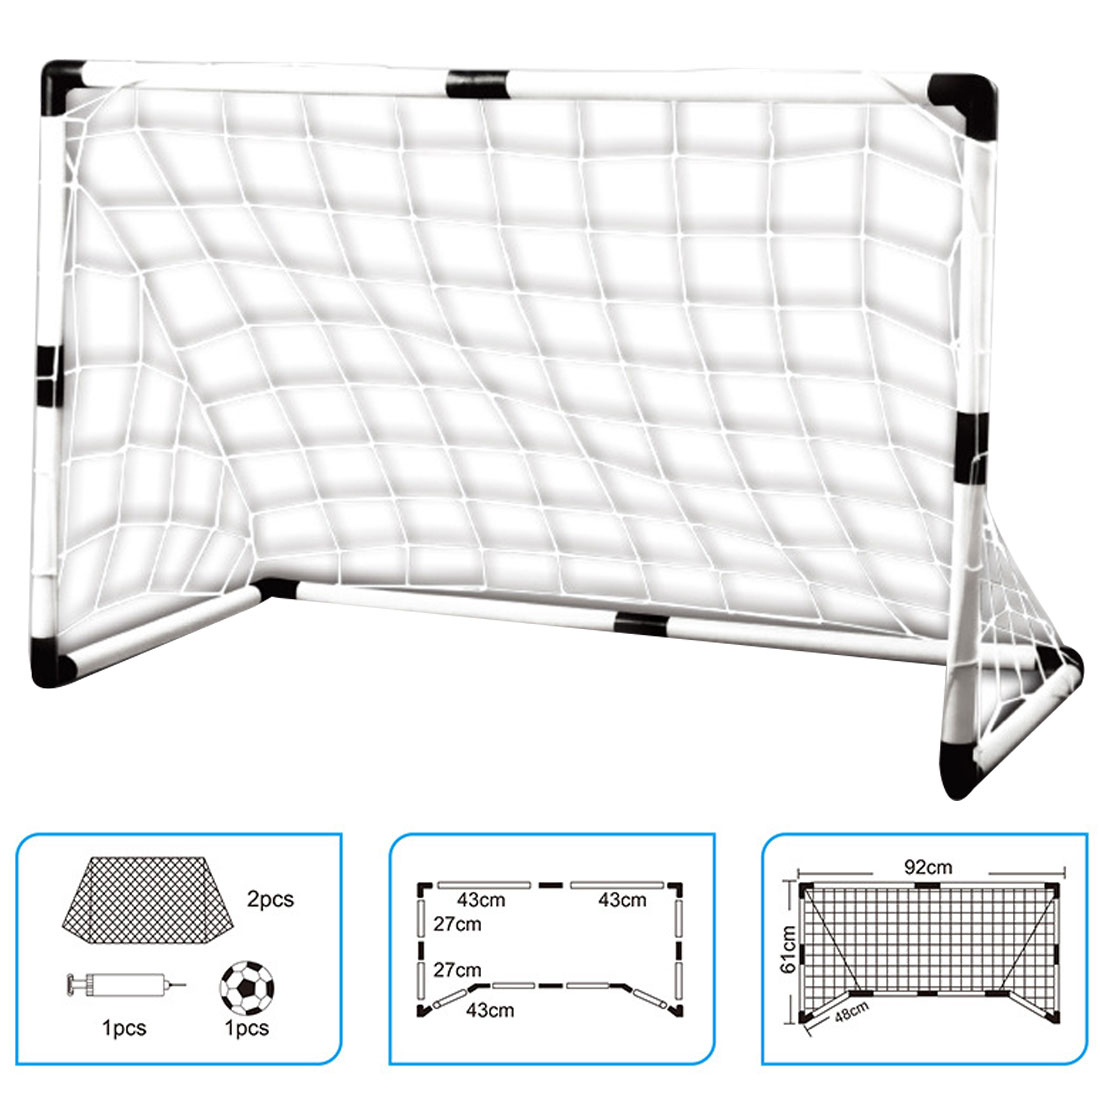 New 2 Sets Detachable DIY Children Sports Soccer Goals Practice Scrimmage Game Football Gate DIY White With Soccer Ball And Pump